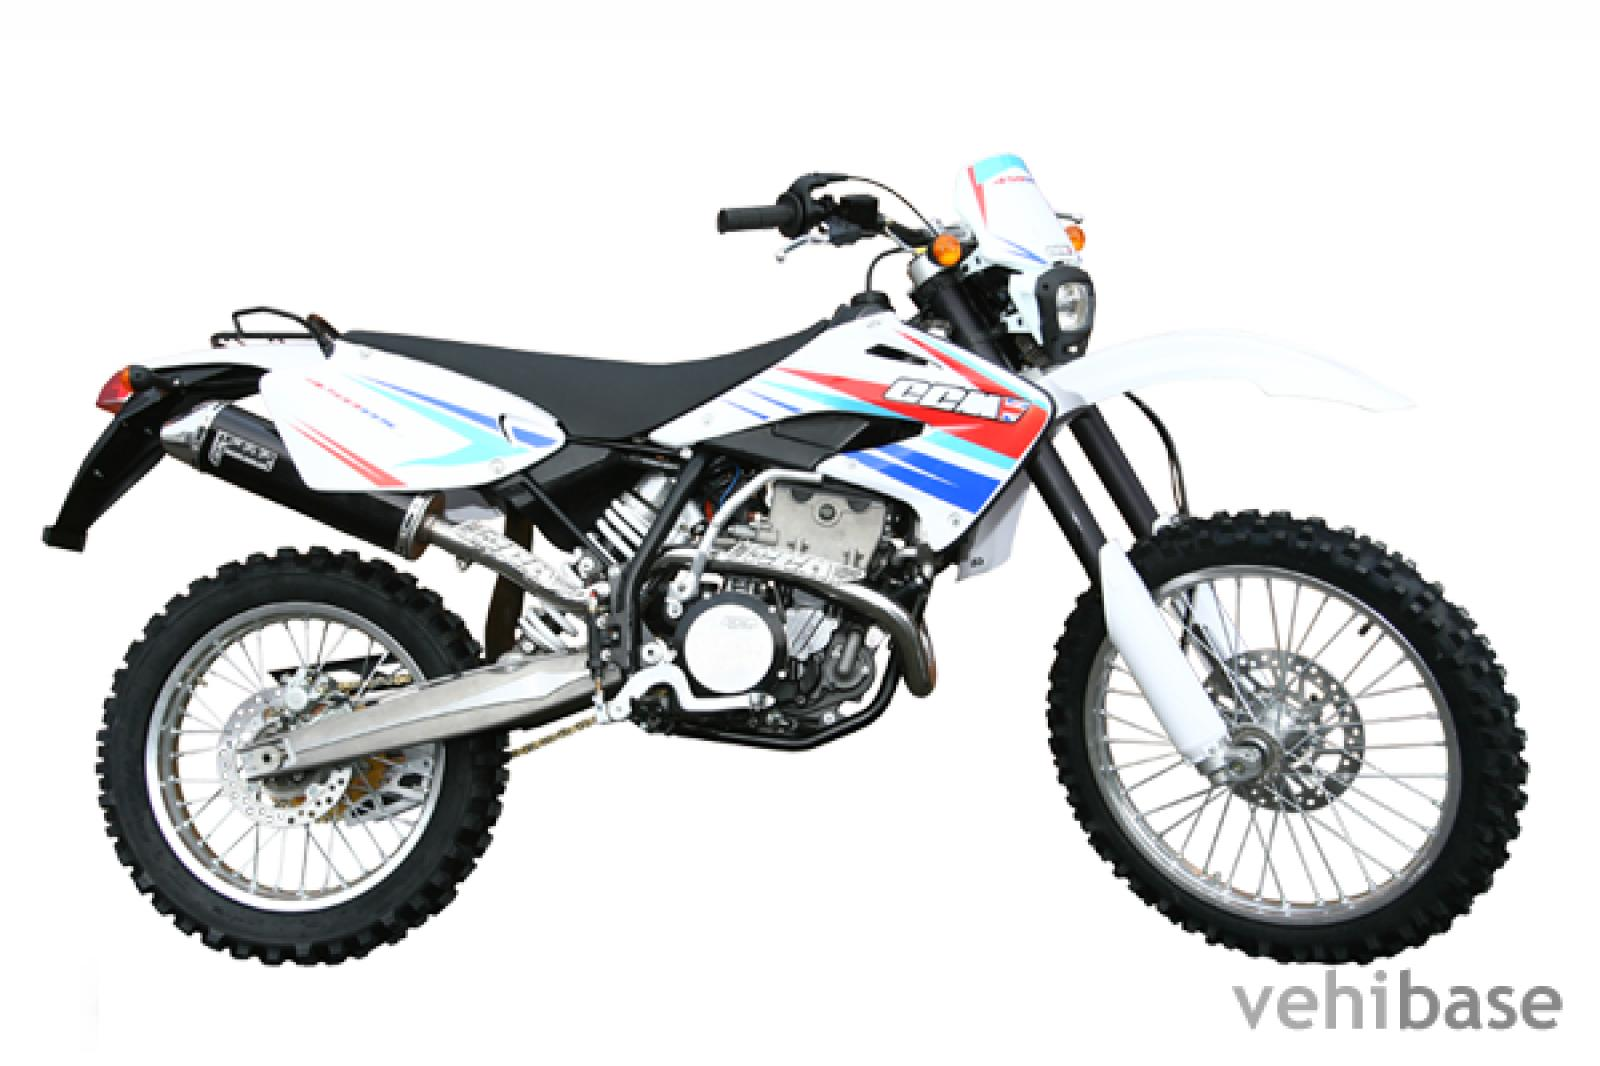 2007 CCM 644 R30: pics, specs and information